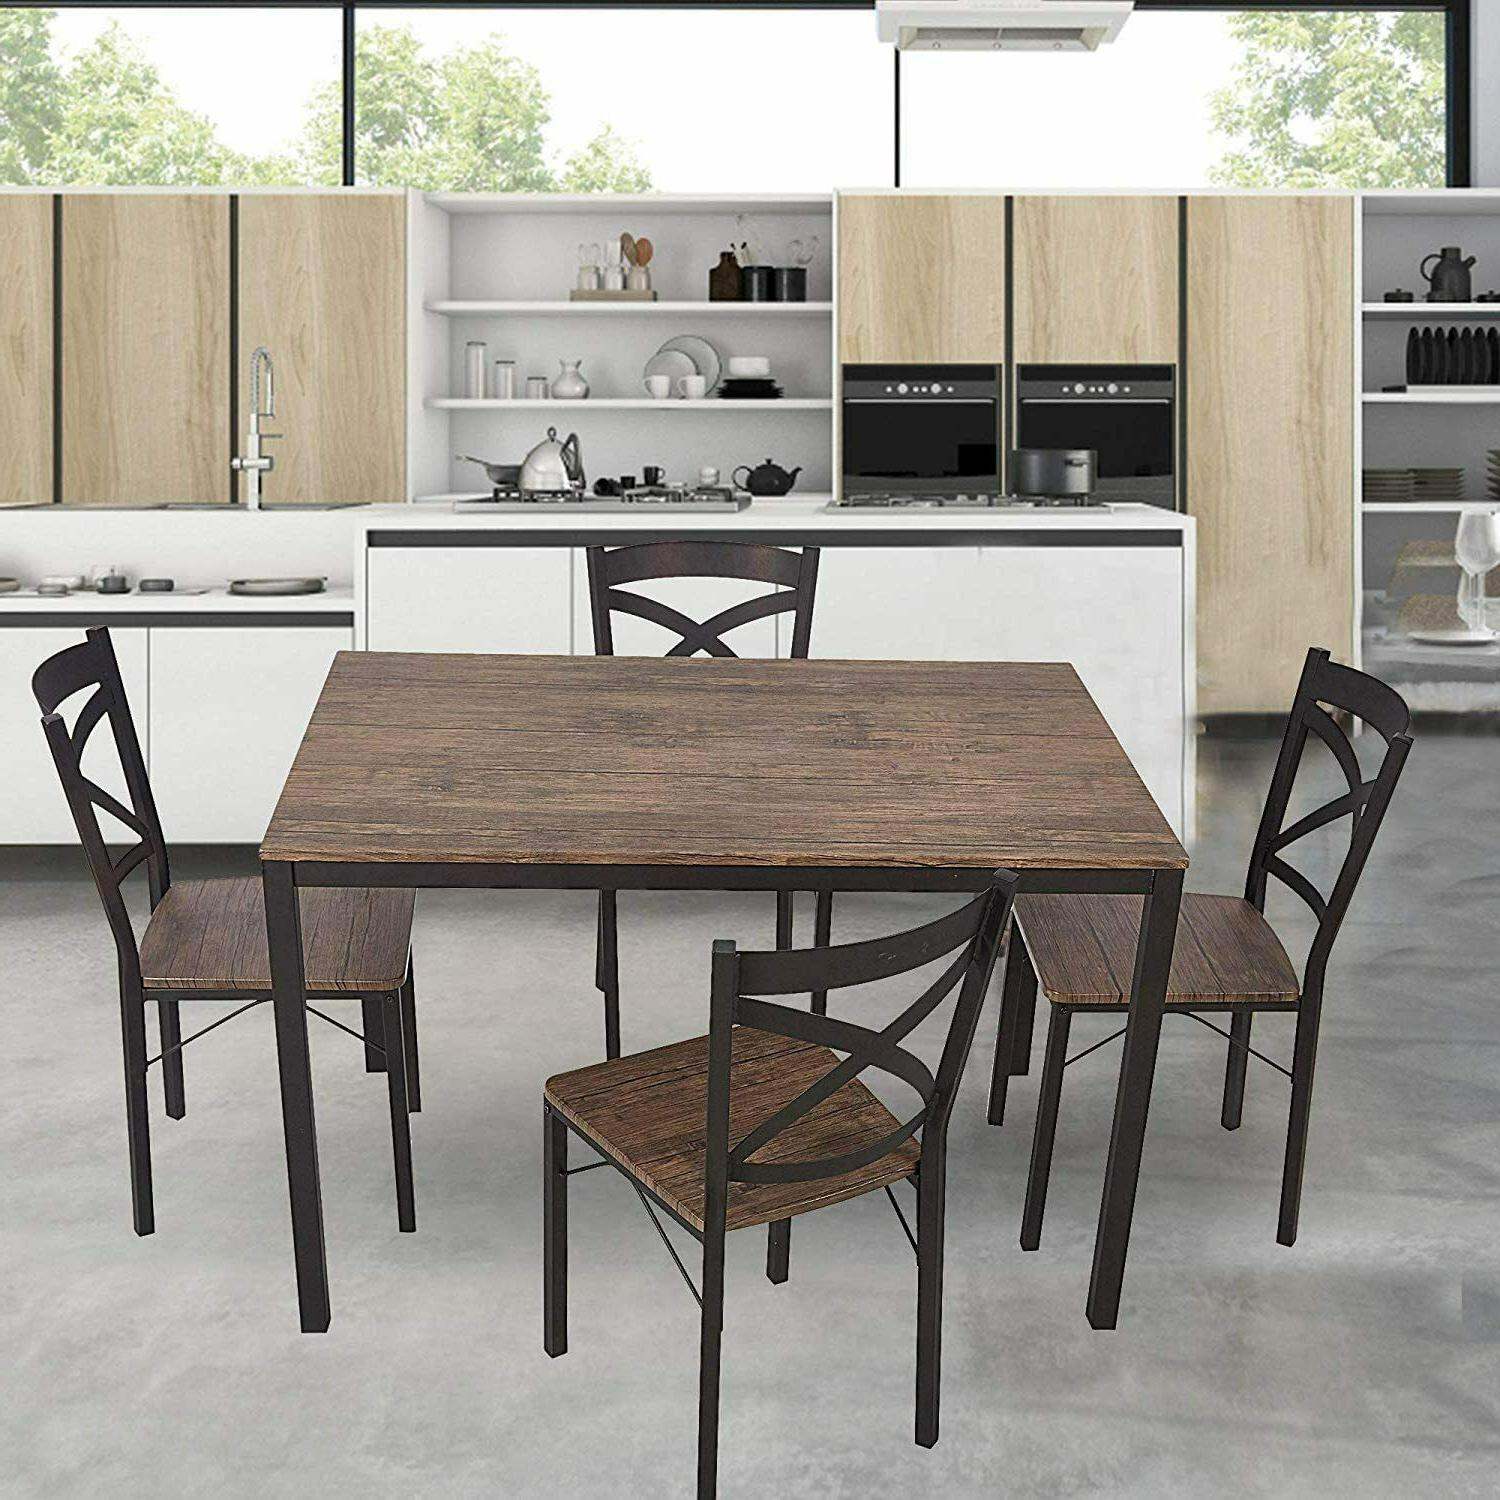 5-Piece Dining Style and Chairs,